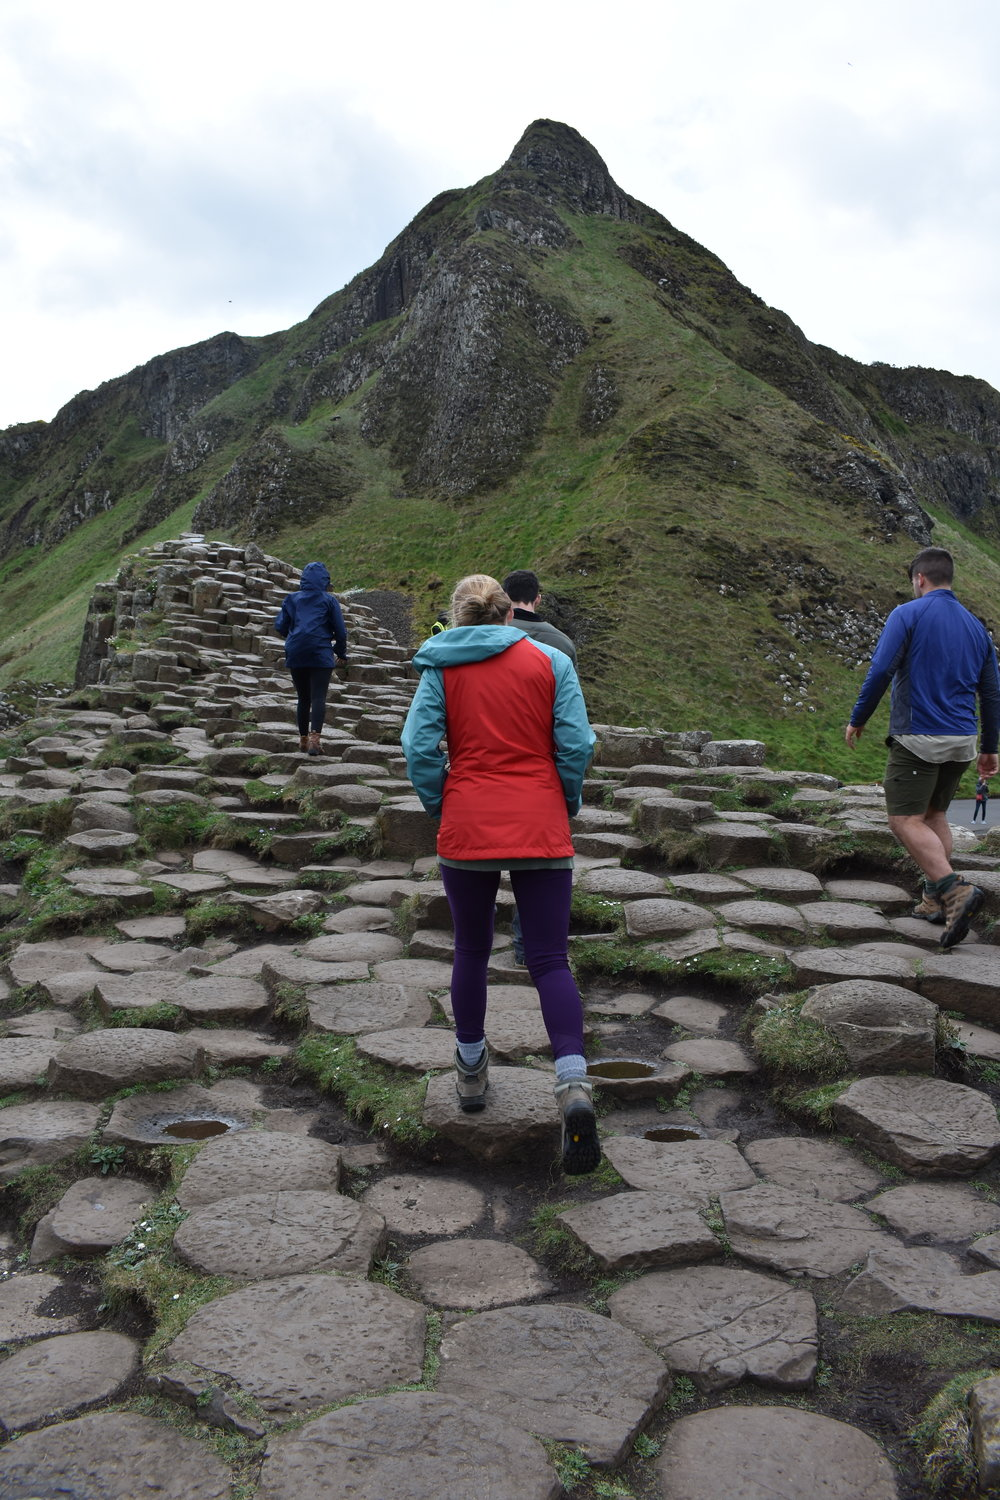 Nikki Neubeck walking on the hexagonal columns at Giant's Causeway. Photo Credit: Nicki Button